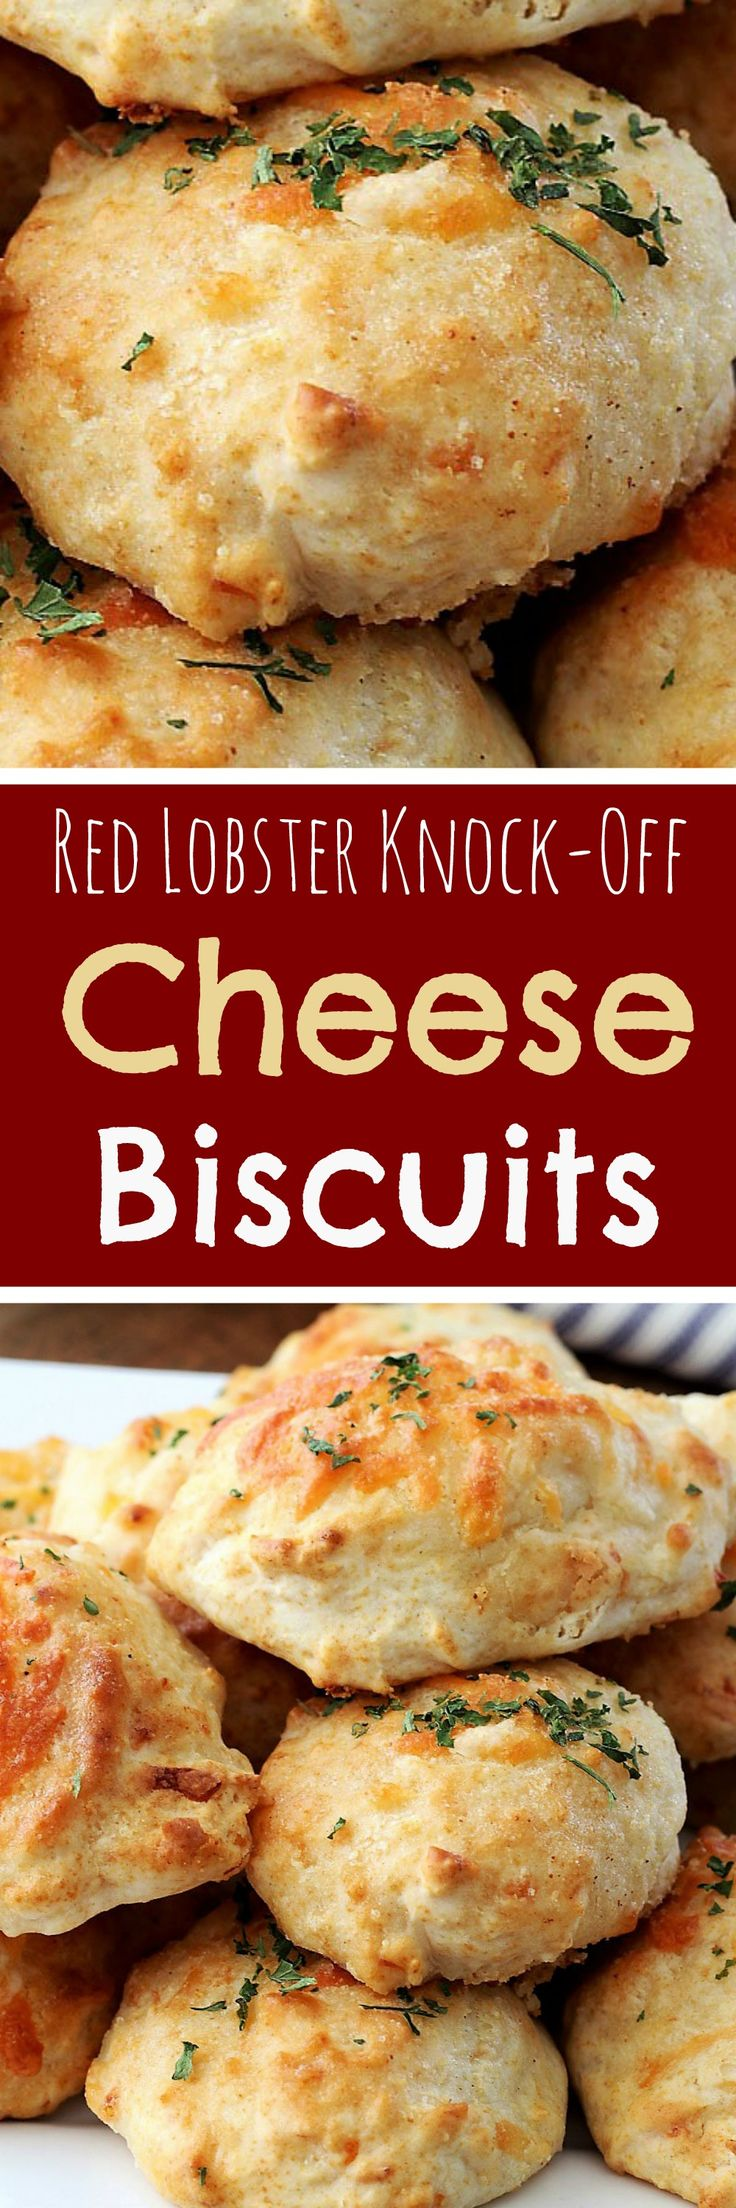 Red Lobster Knock-Off Cheese Biscuits , Recipe Treasures Blog